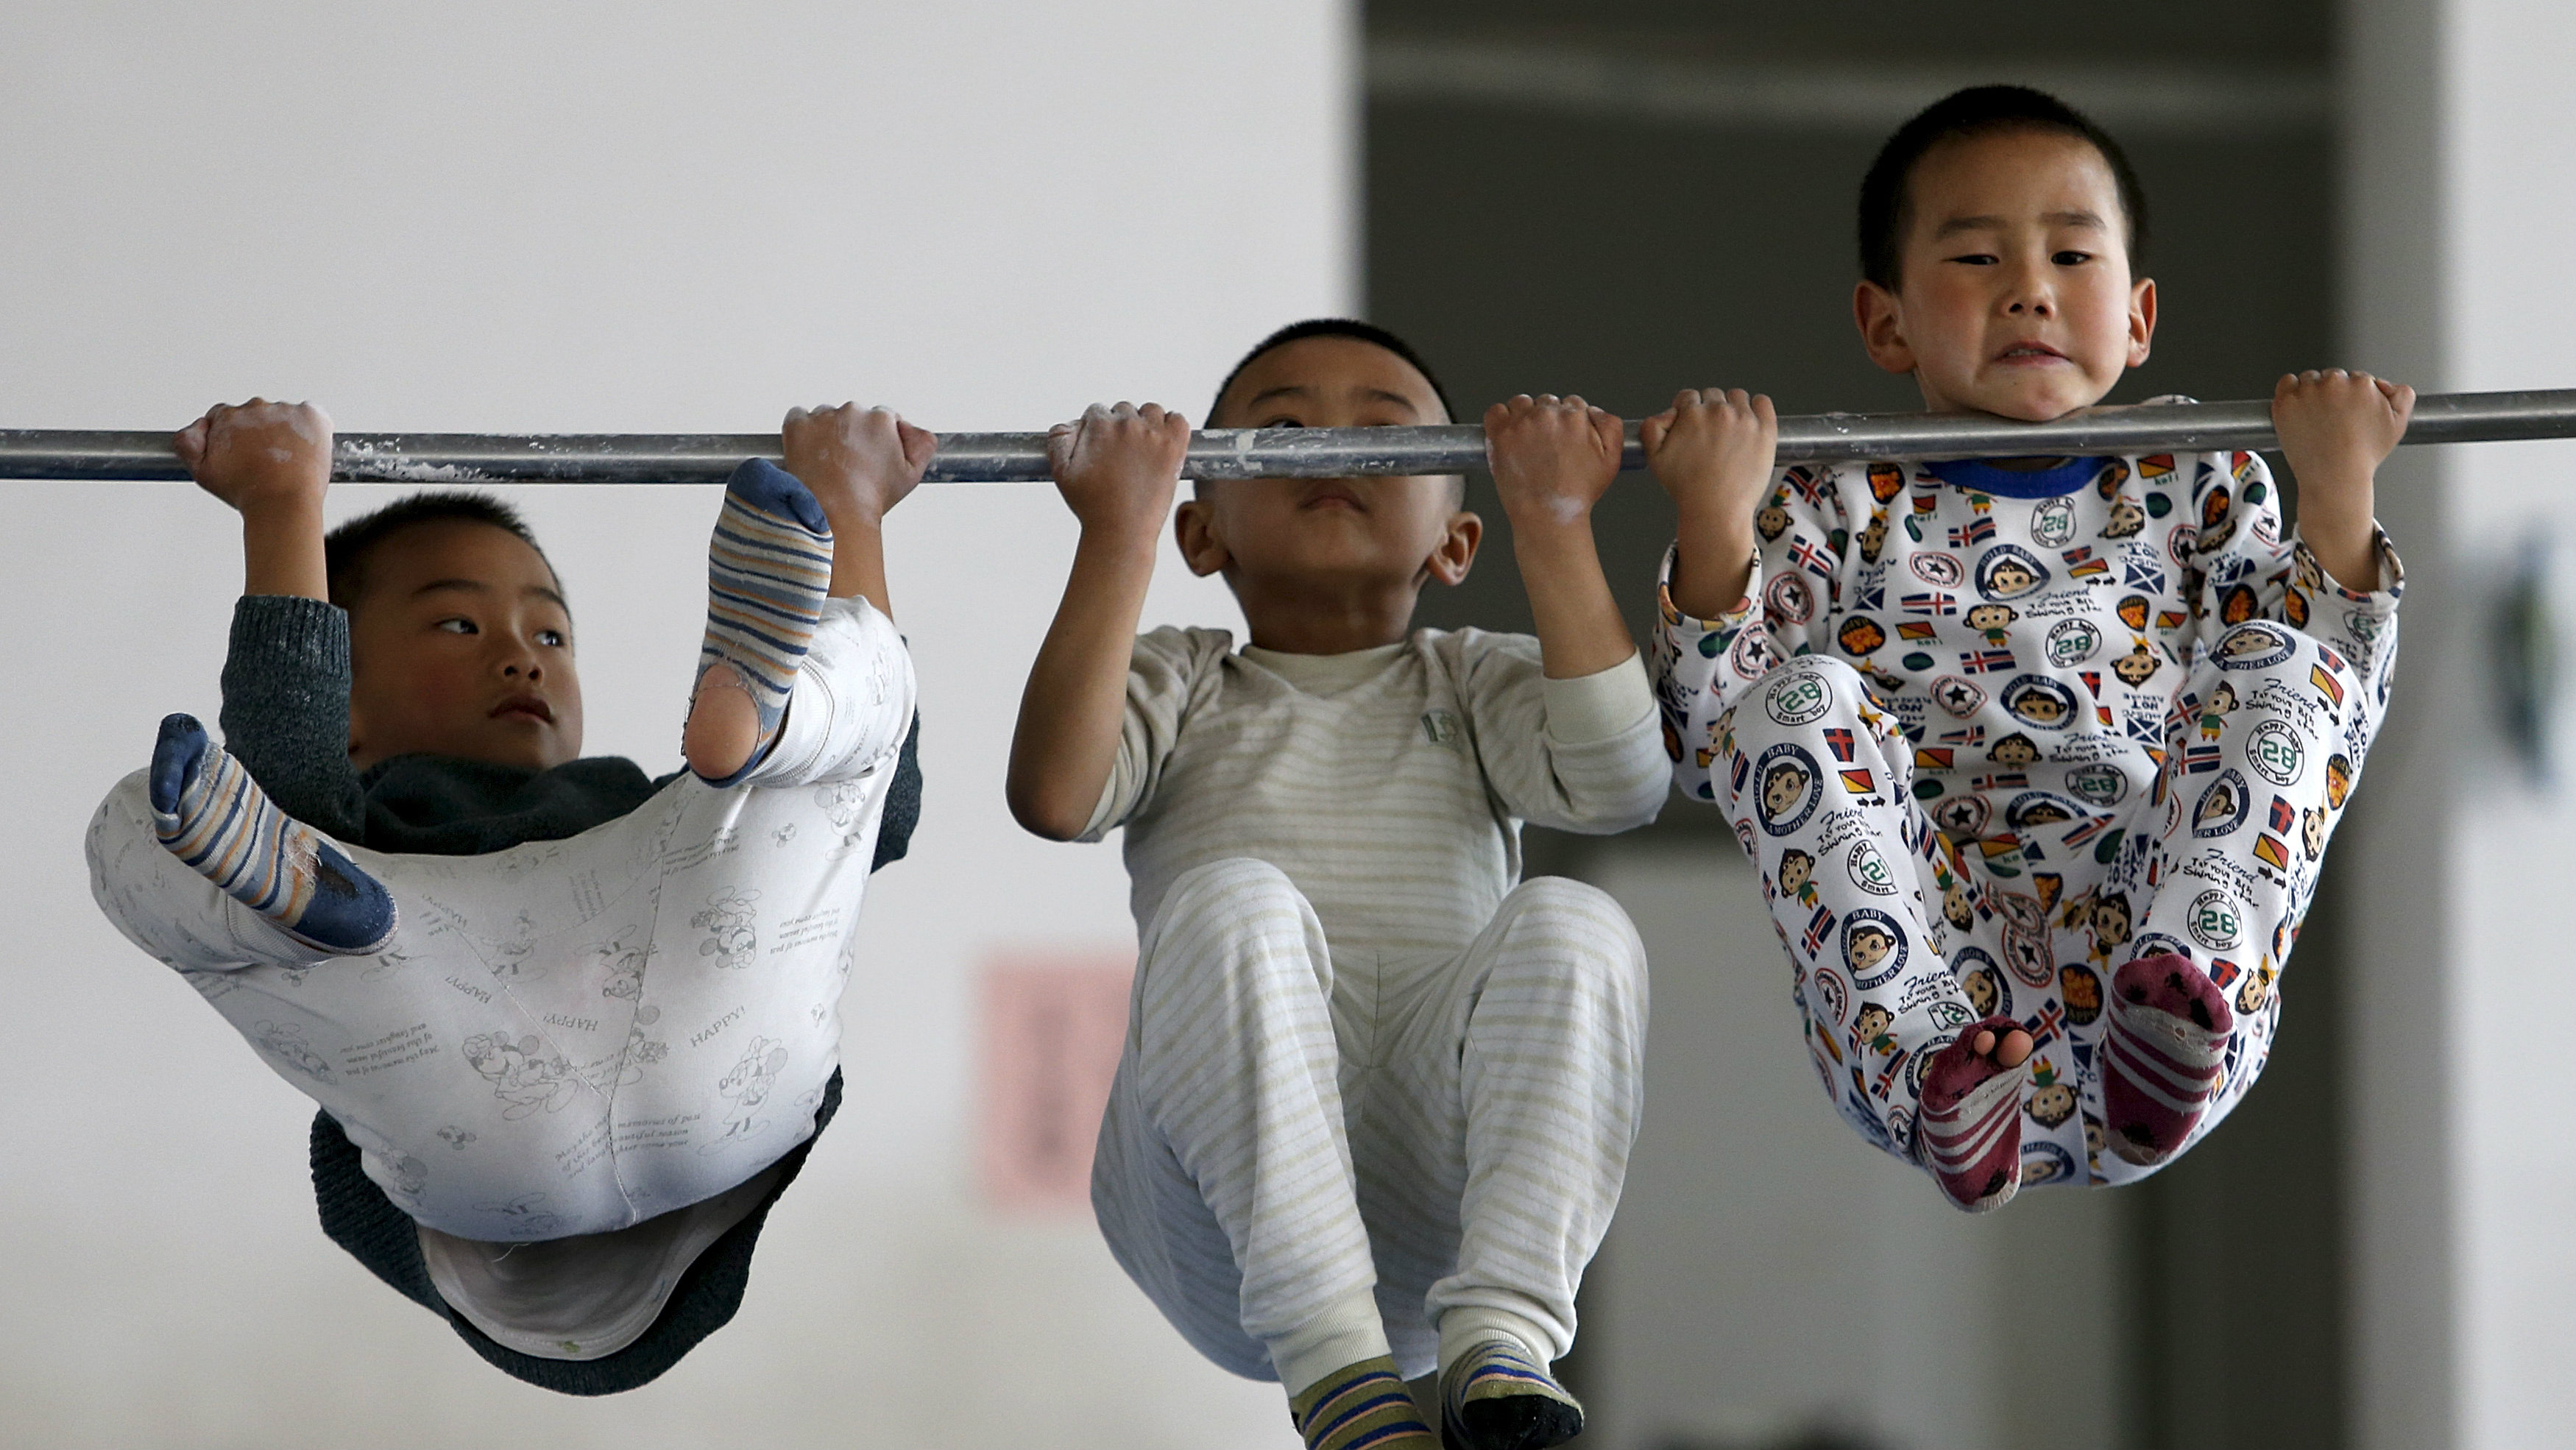 Young gymnasts practice pull-up on a bar at a gymnasium of a sports school in Jiaxing, Zhejiang province April 11, 2015. REUTERS/William Hong TPX IMAGES OF THE DAY  CHINA OUT. NO COMMERCIAL OR EDITORIAL SALES IN CHINA